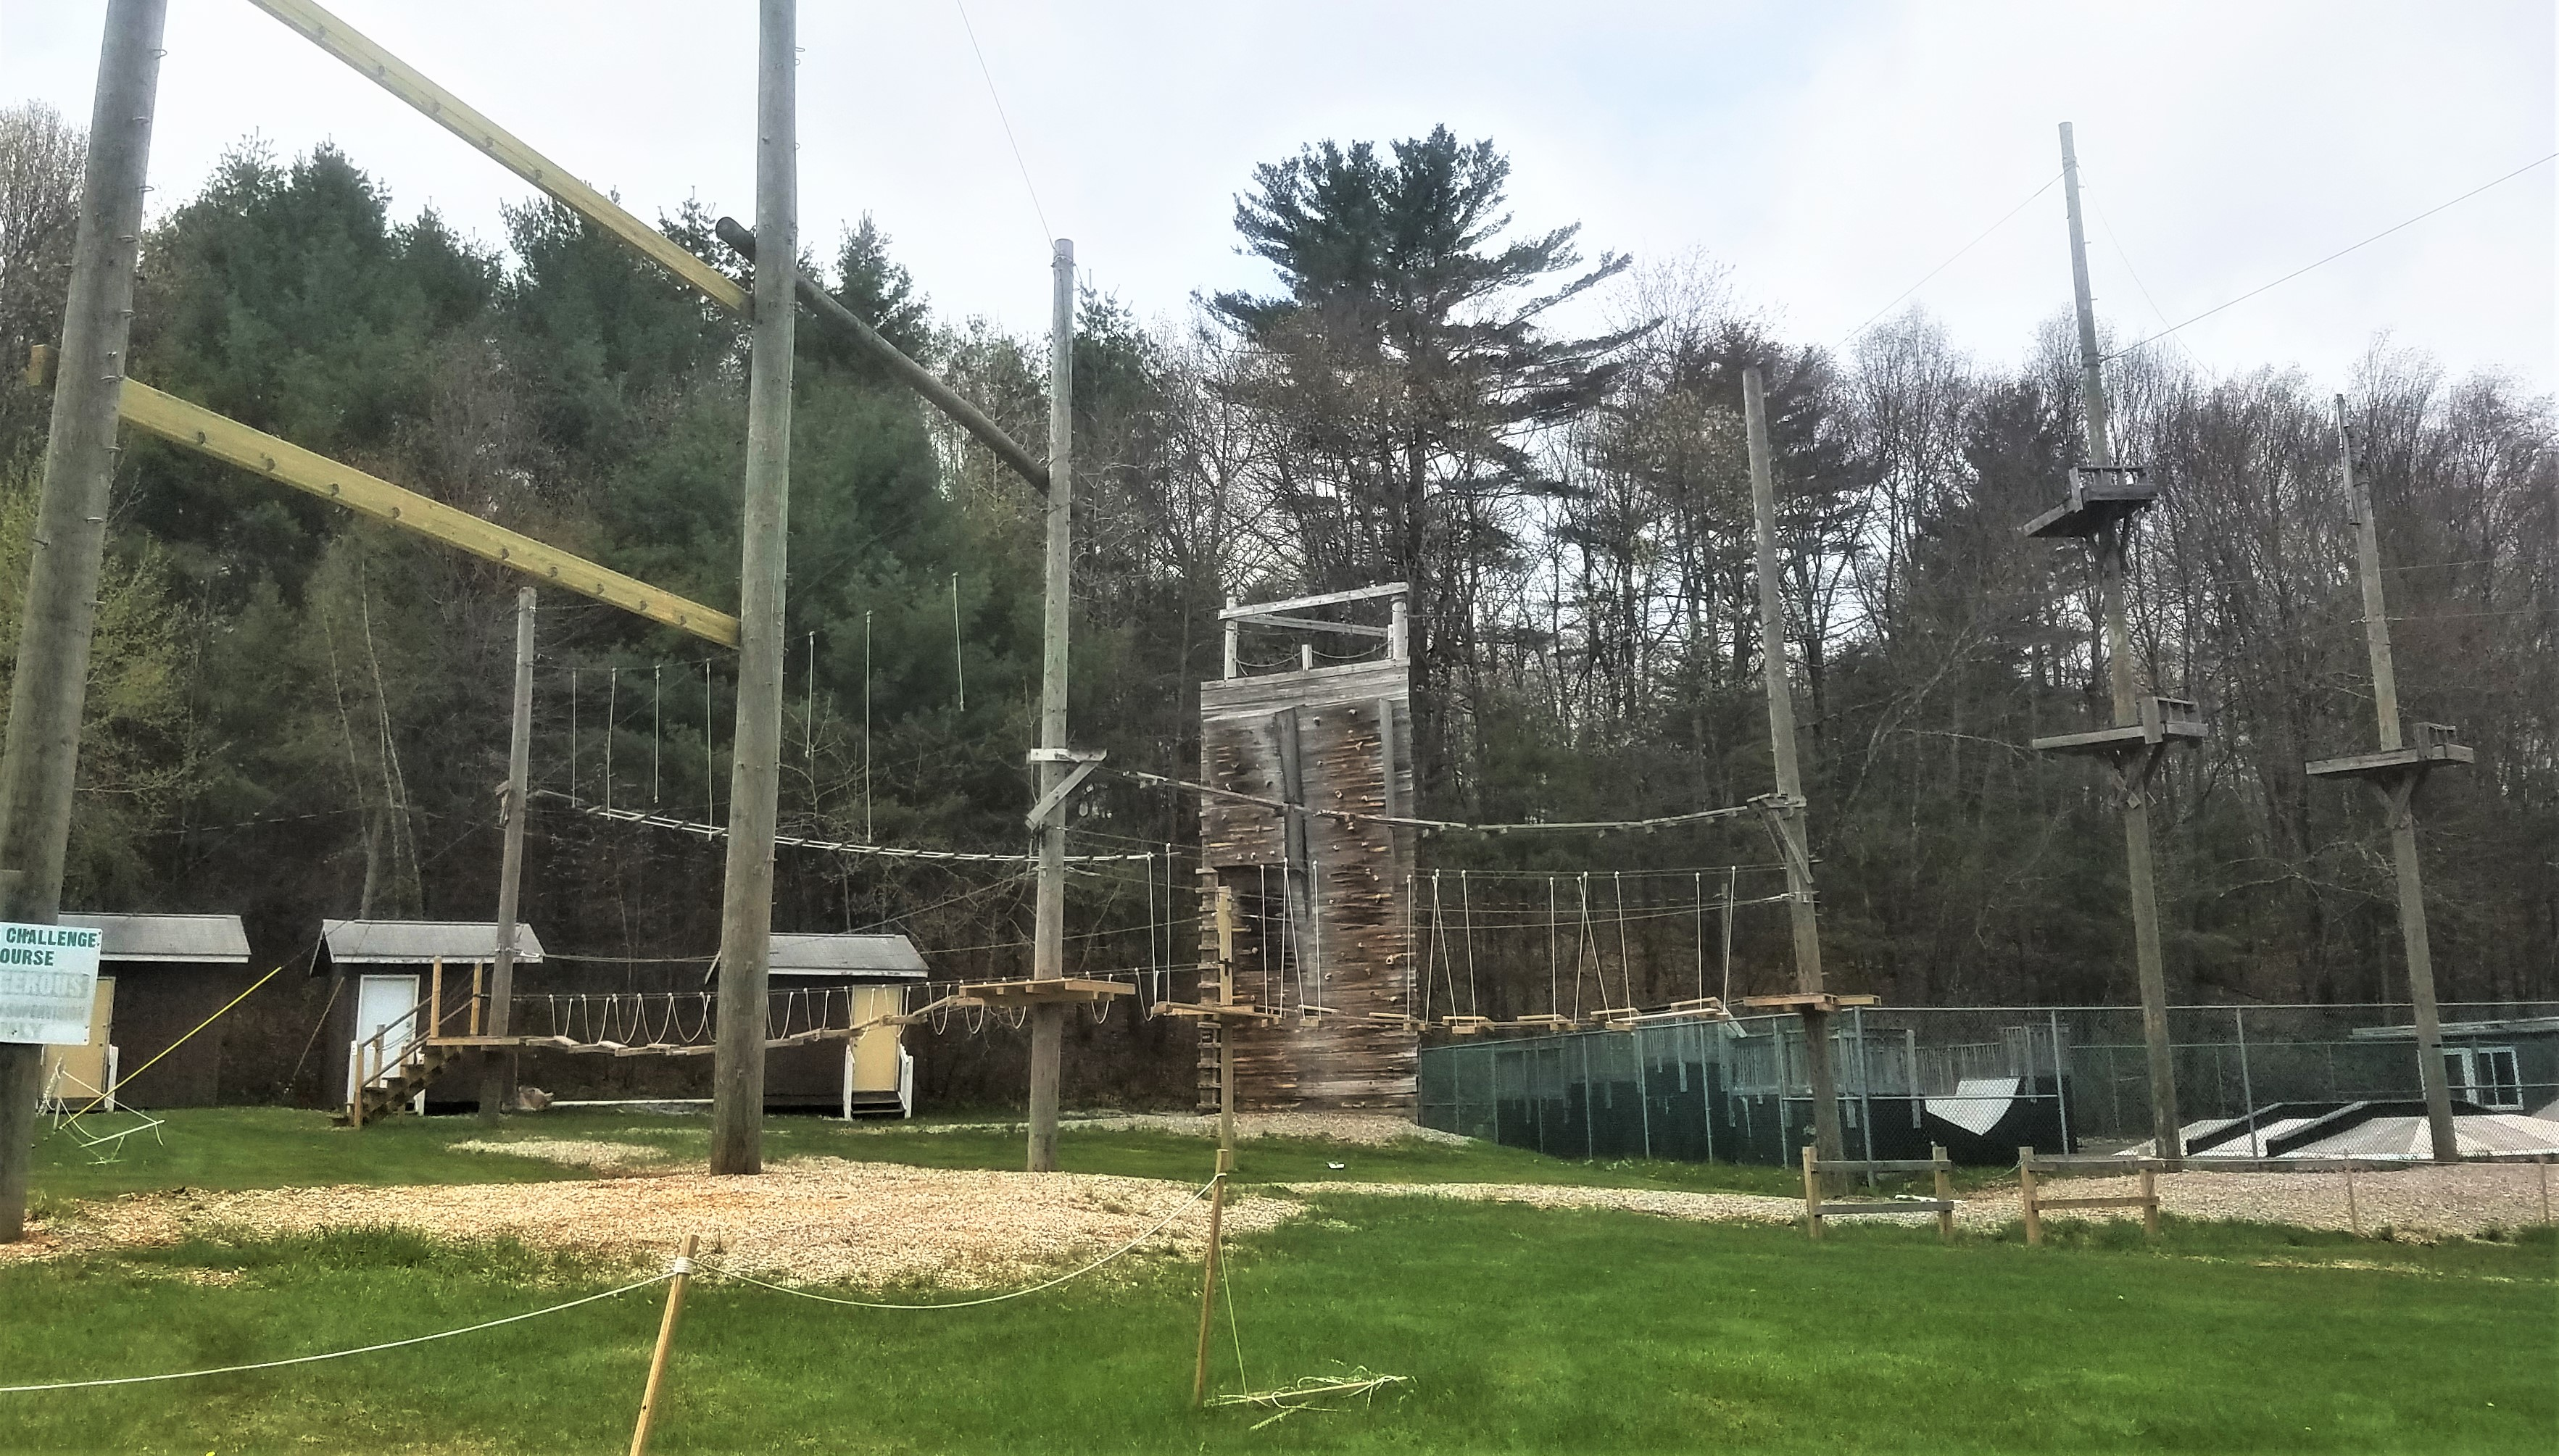 High Ropes Challenge Course